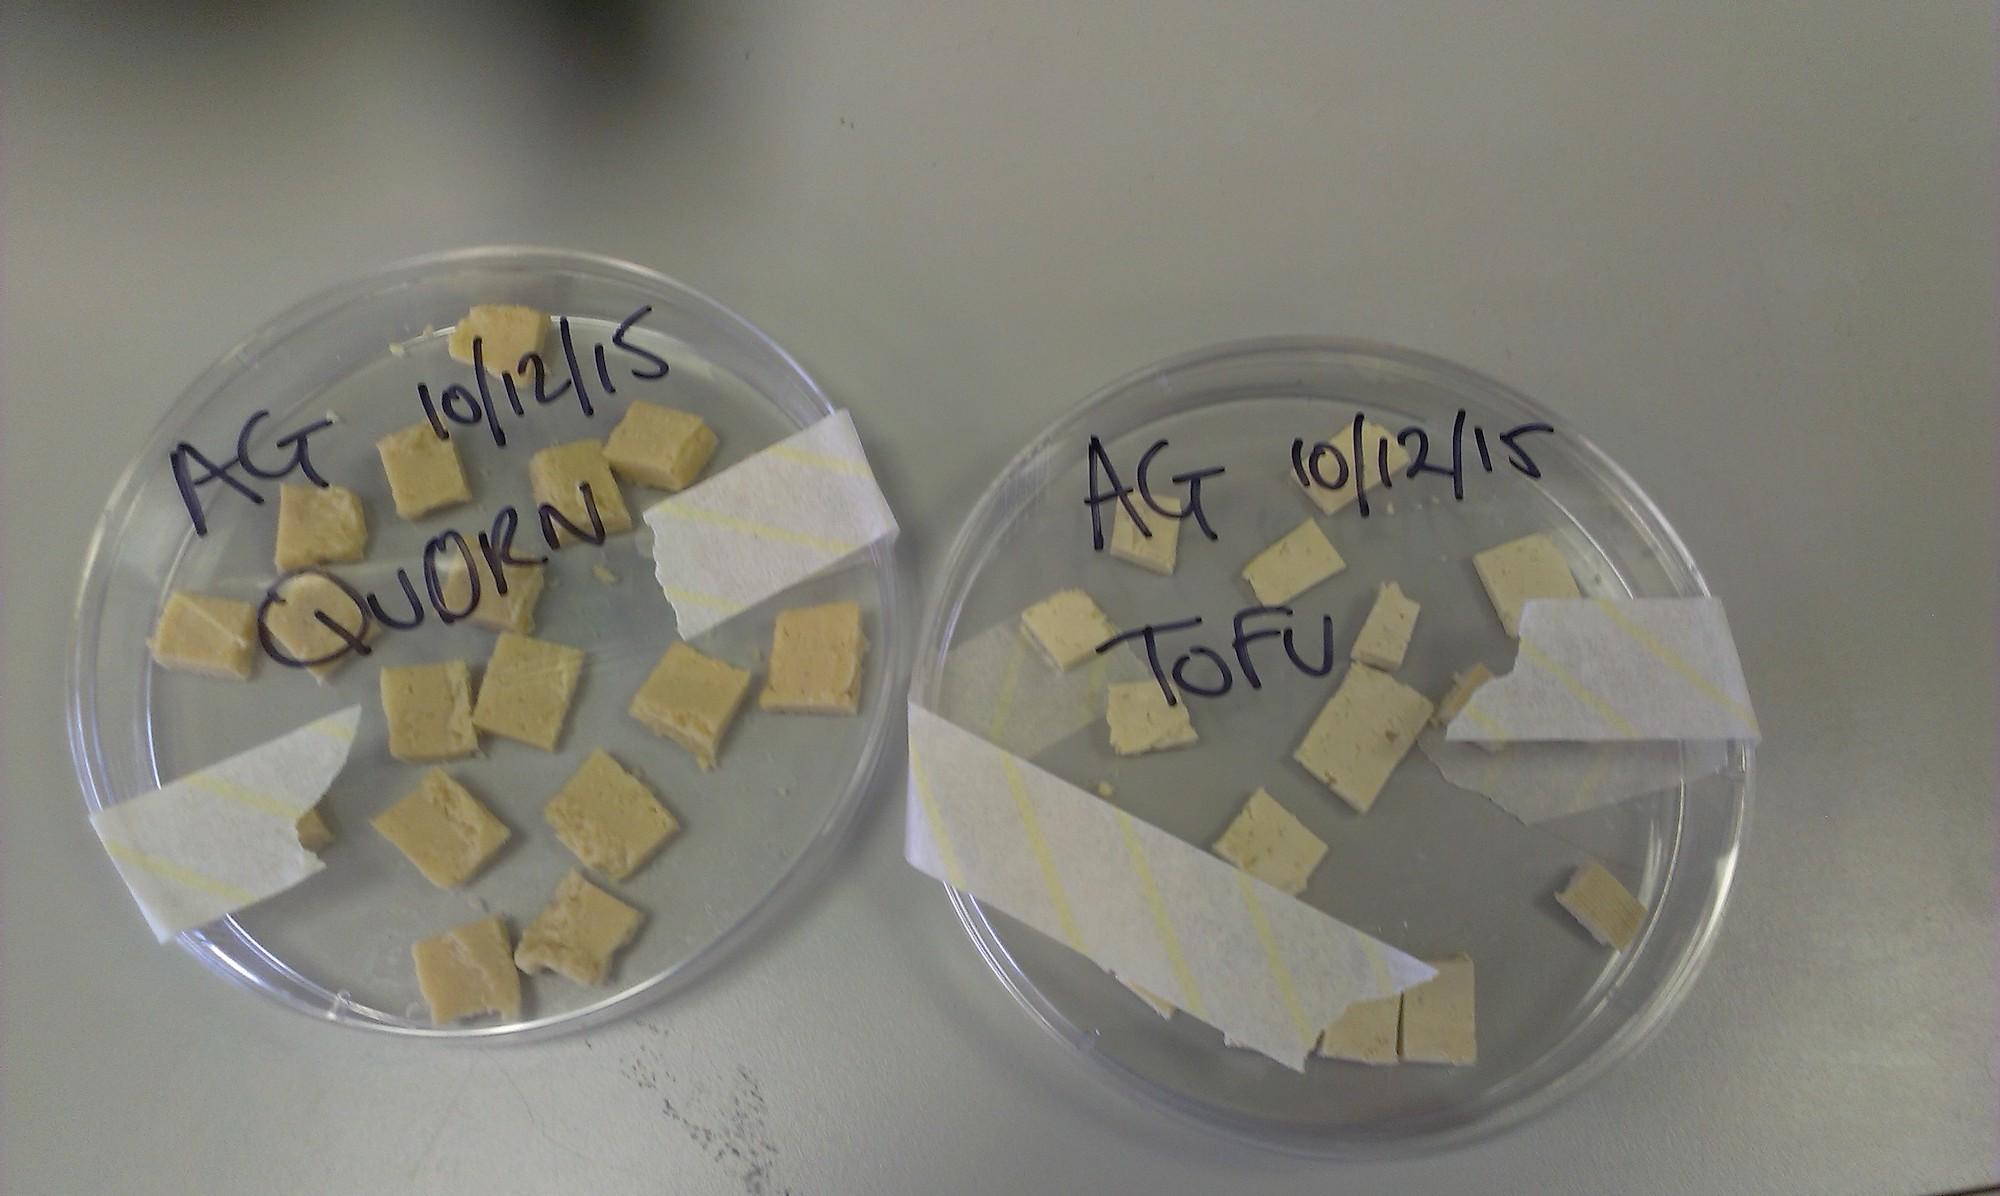 """2 filled petri dishes, one that is labled """"AG 10/12/15 QUORN"""" and the other """"AG 10/12/15 TOFU"""""""